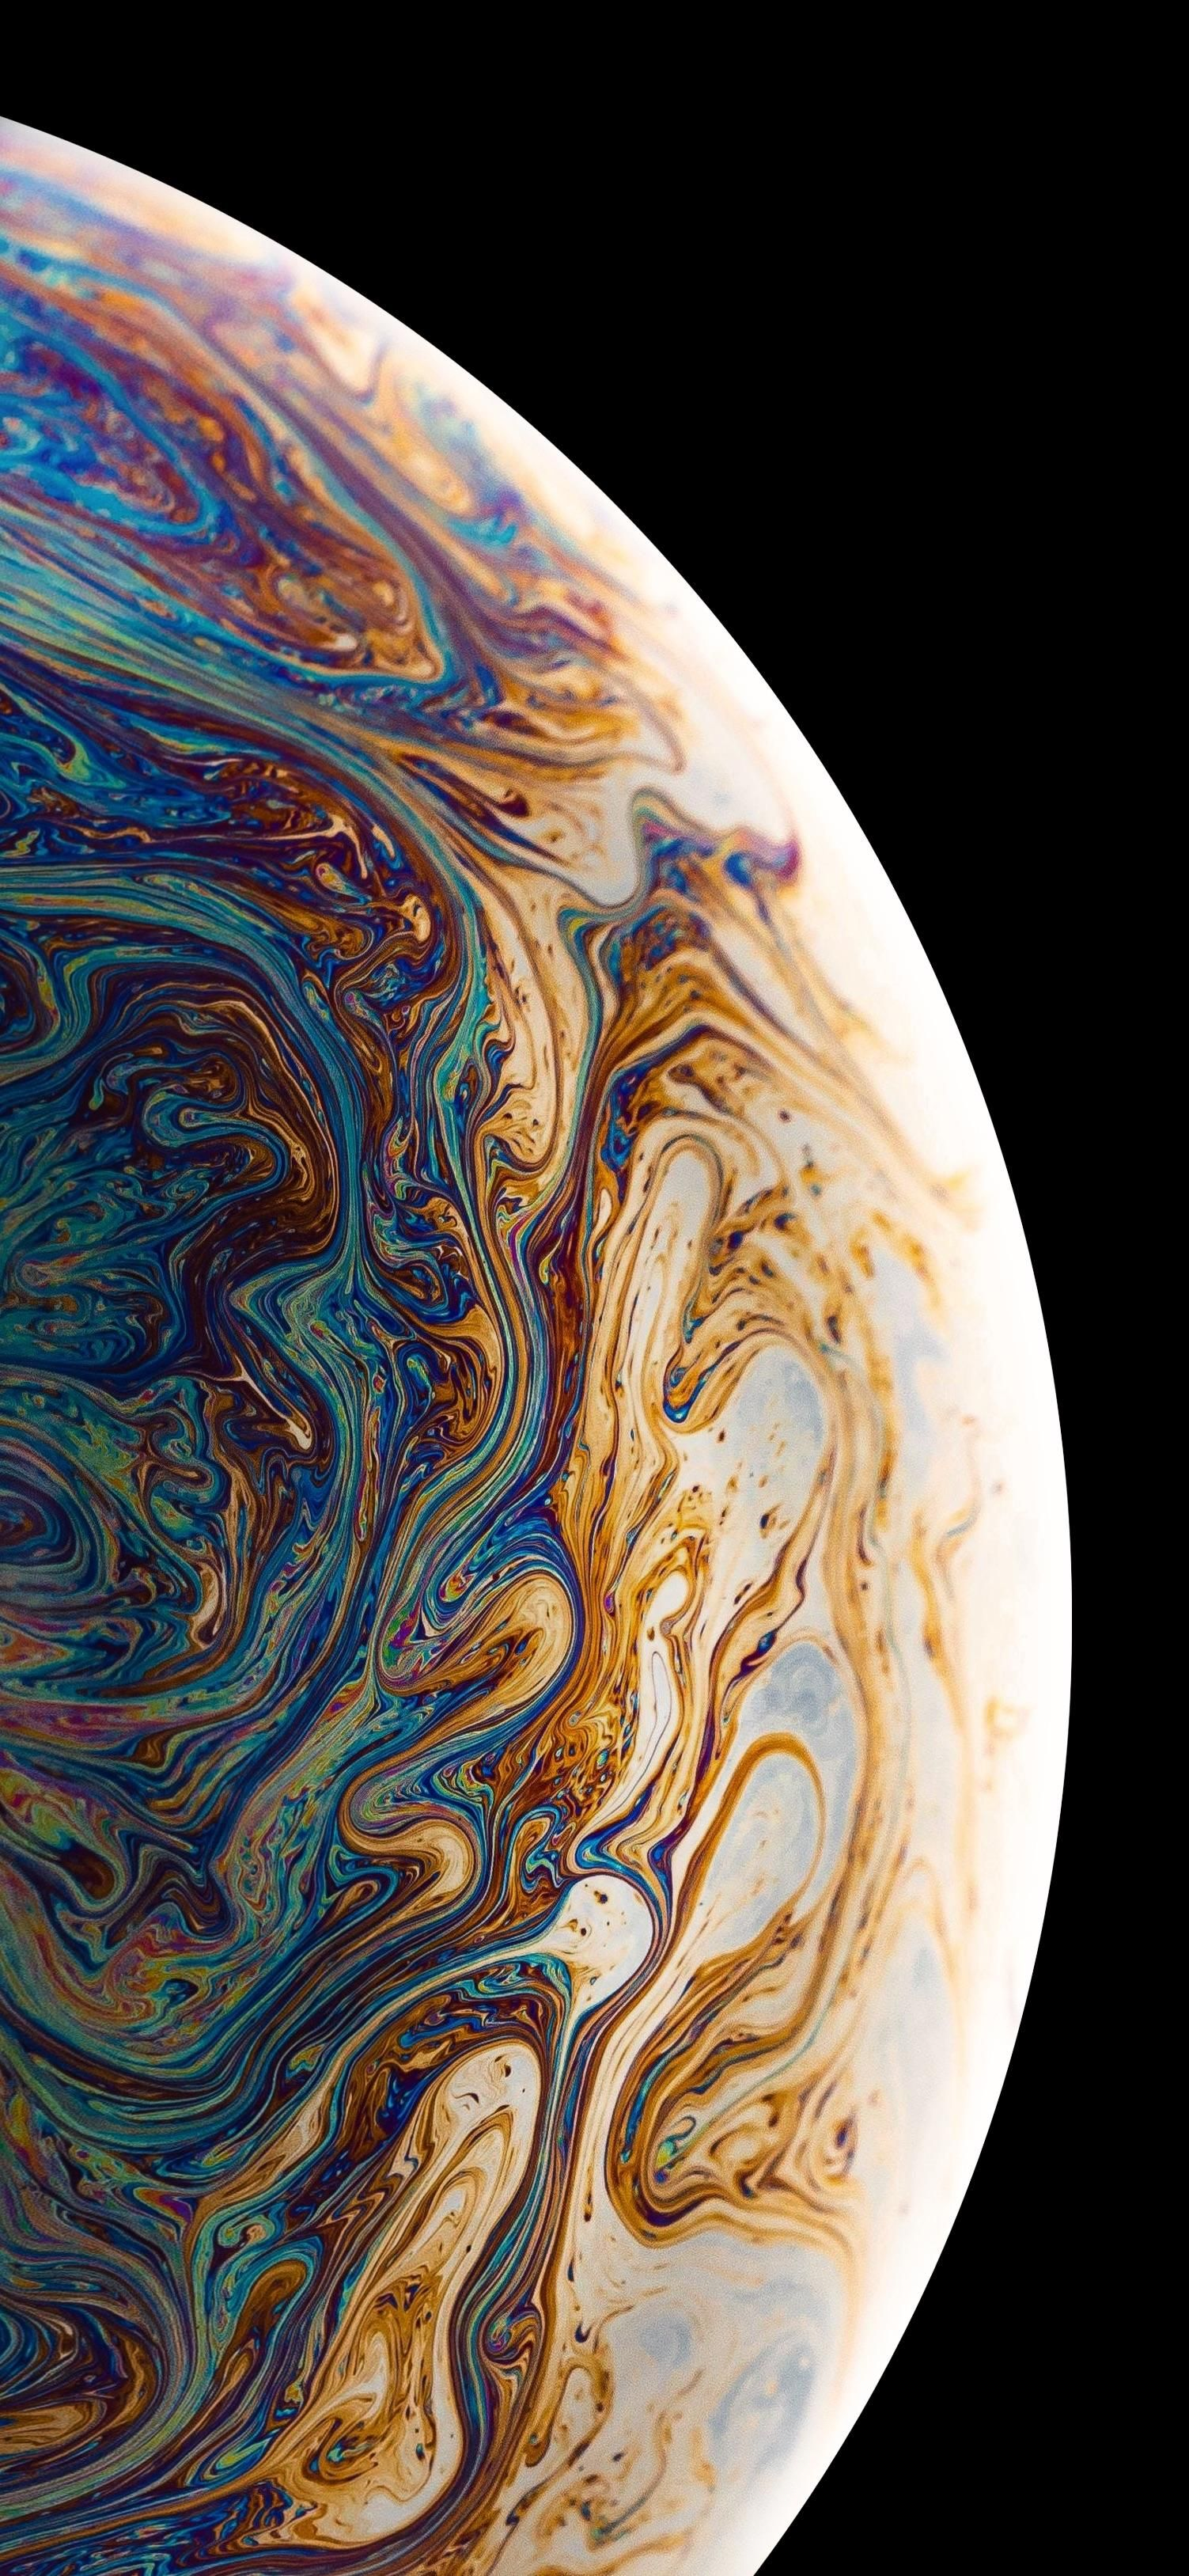 iPhone XS Gold Edition. Looks like a liquid globe, mixed